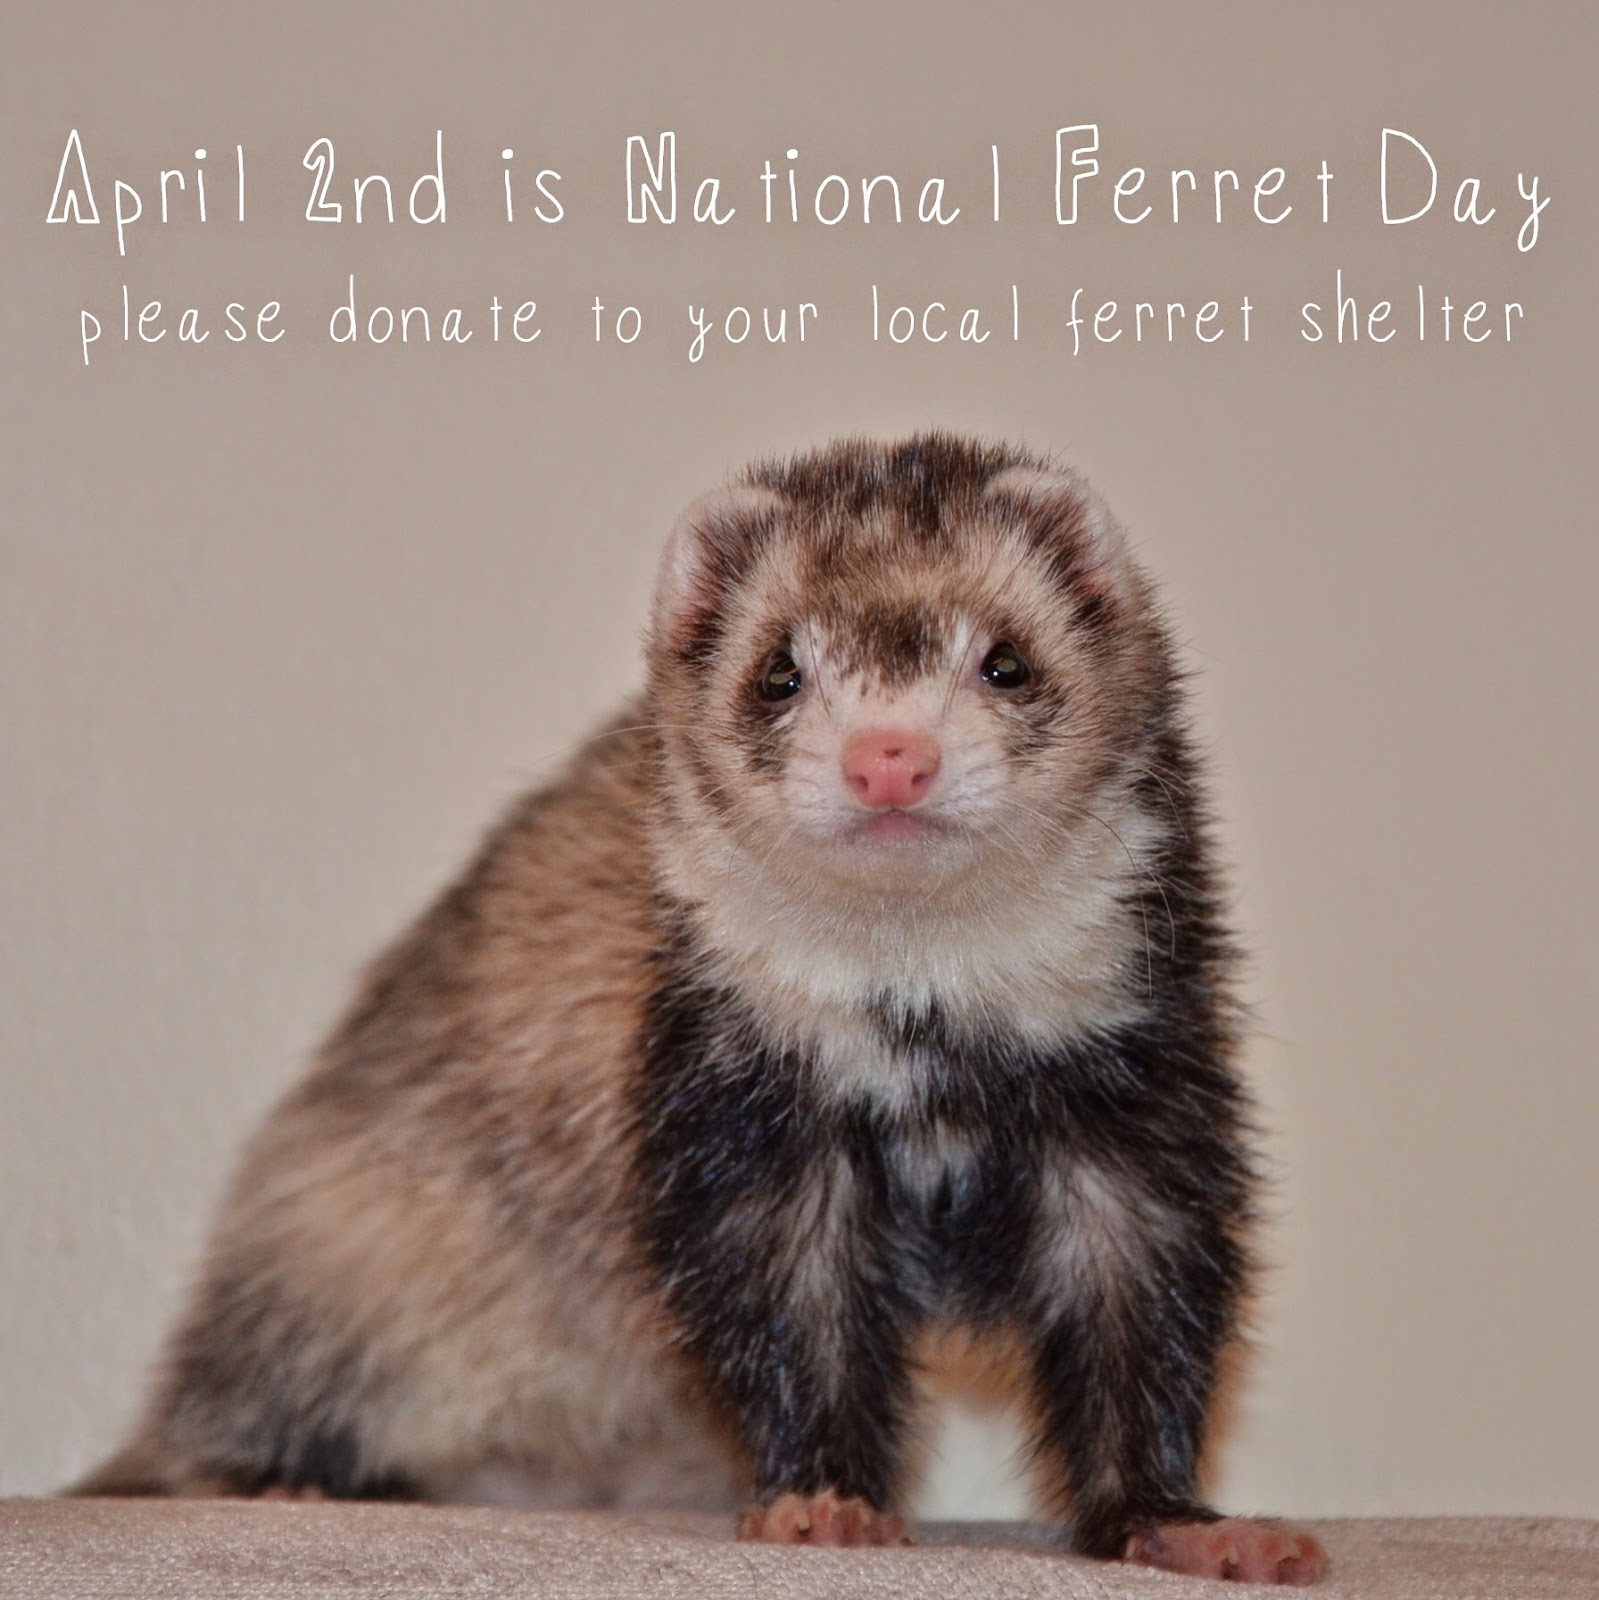 Happy National Ferret Day